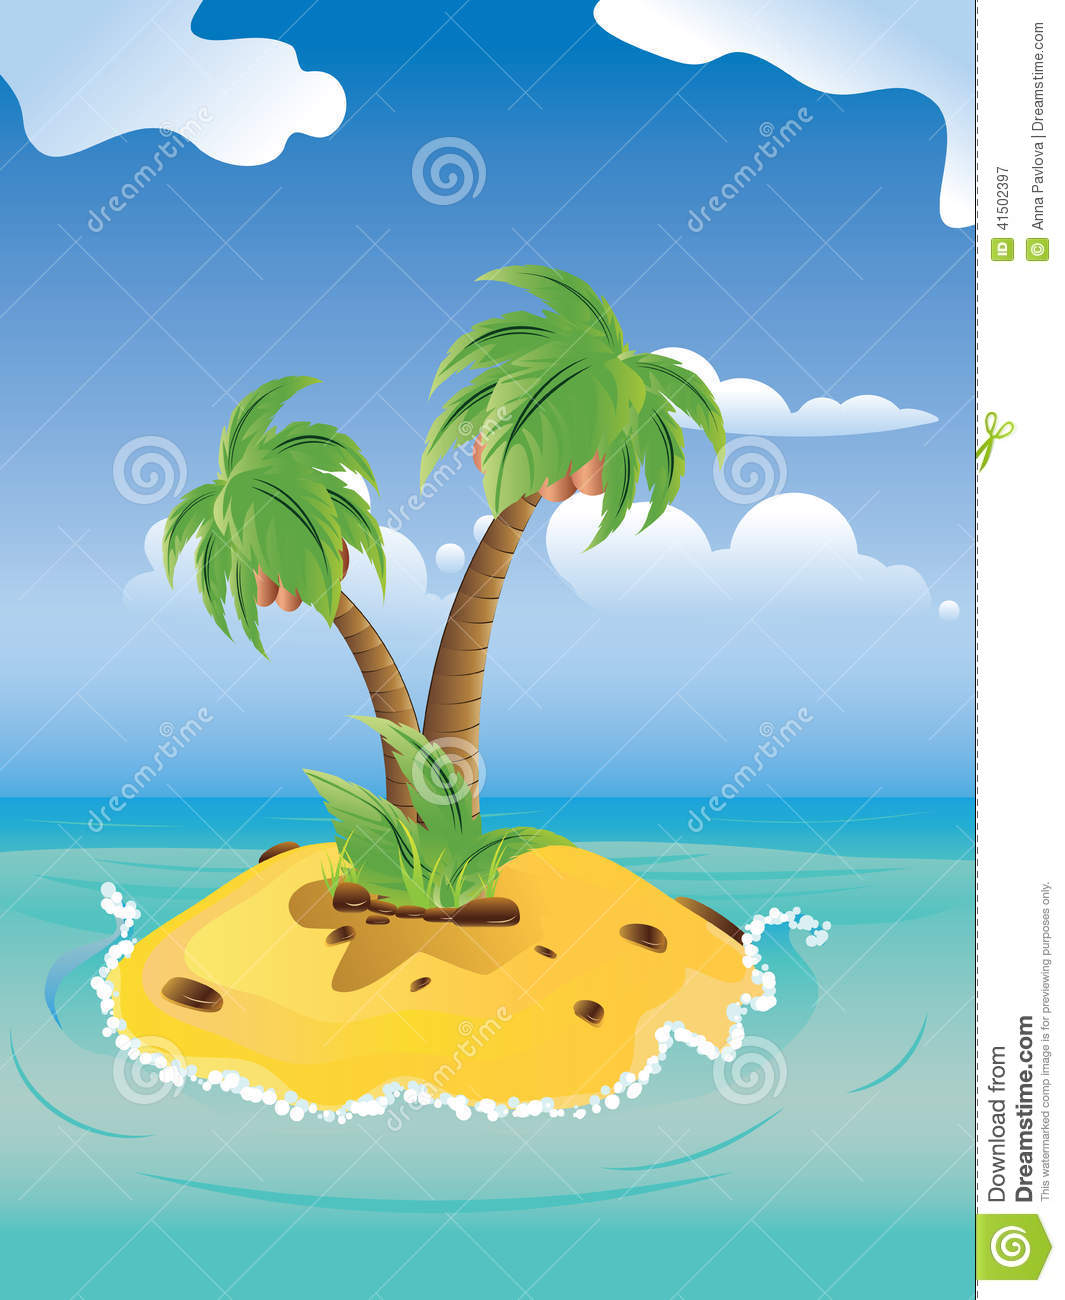 Cartoon Palm Island Stock Vector - Image: 41502397